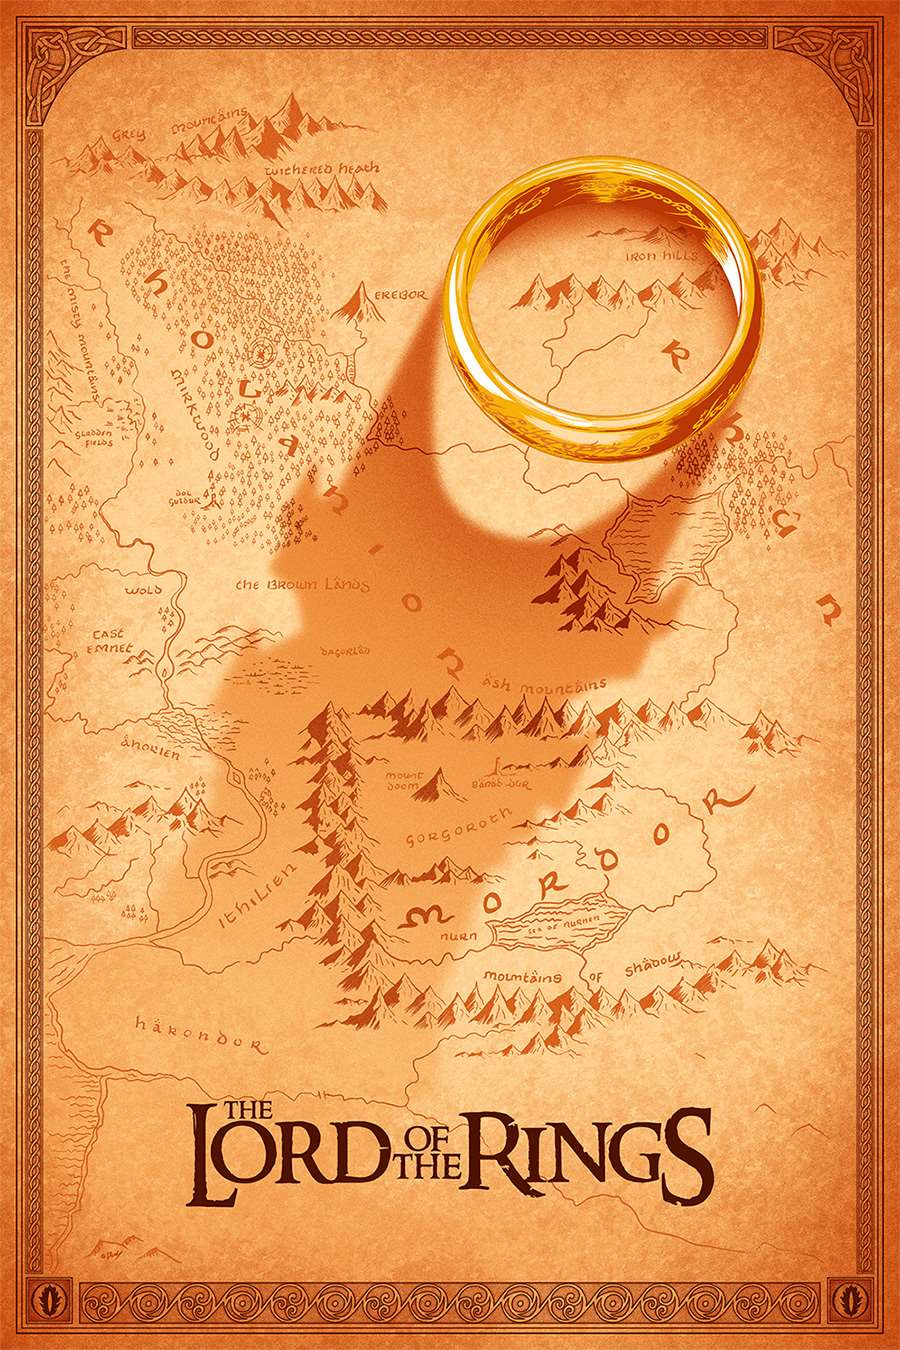 Doaly, Lord of the Rings alternative poster art. Maps.